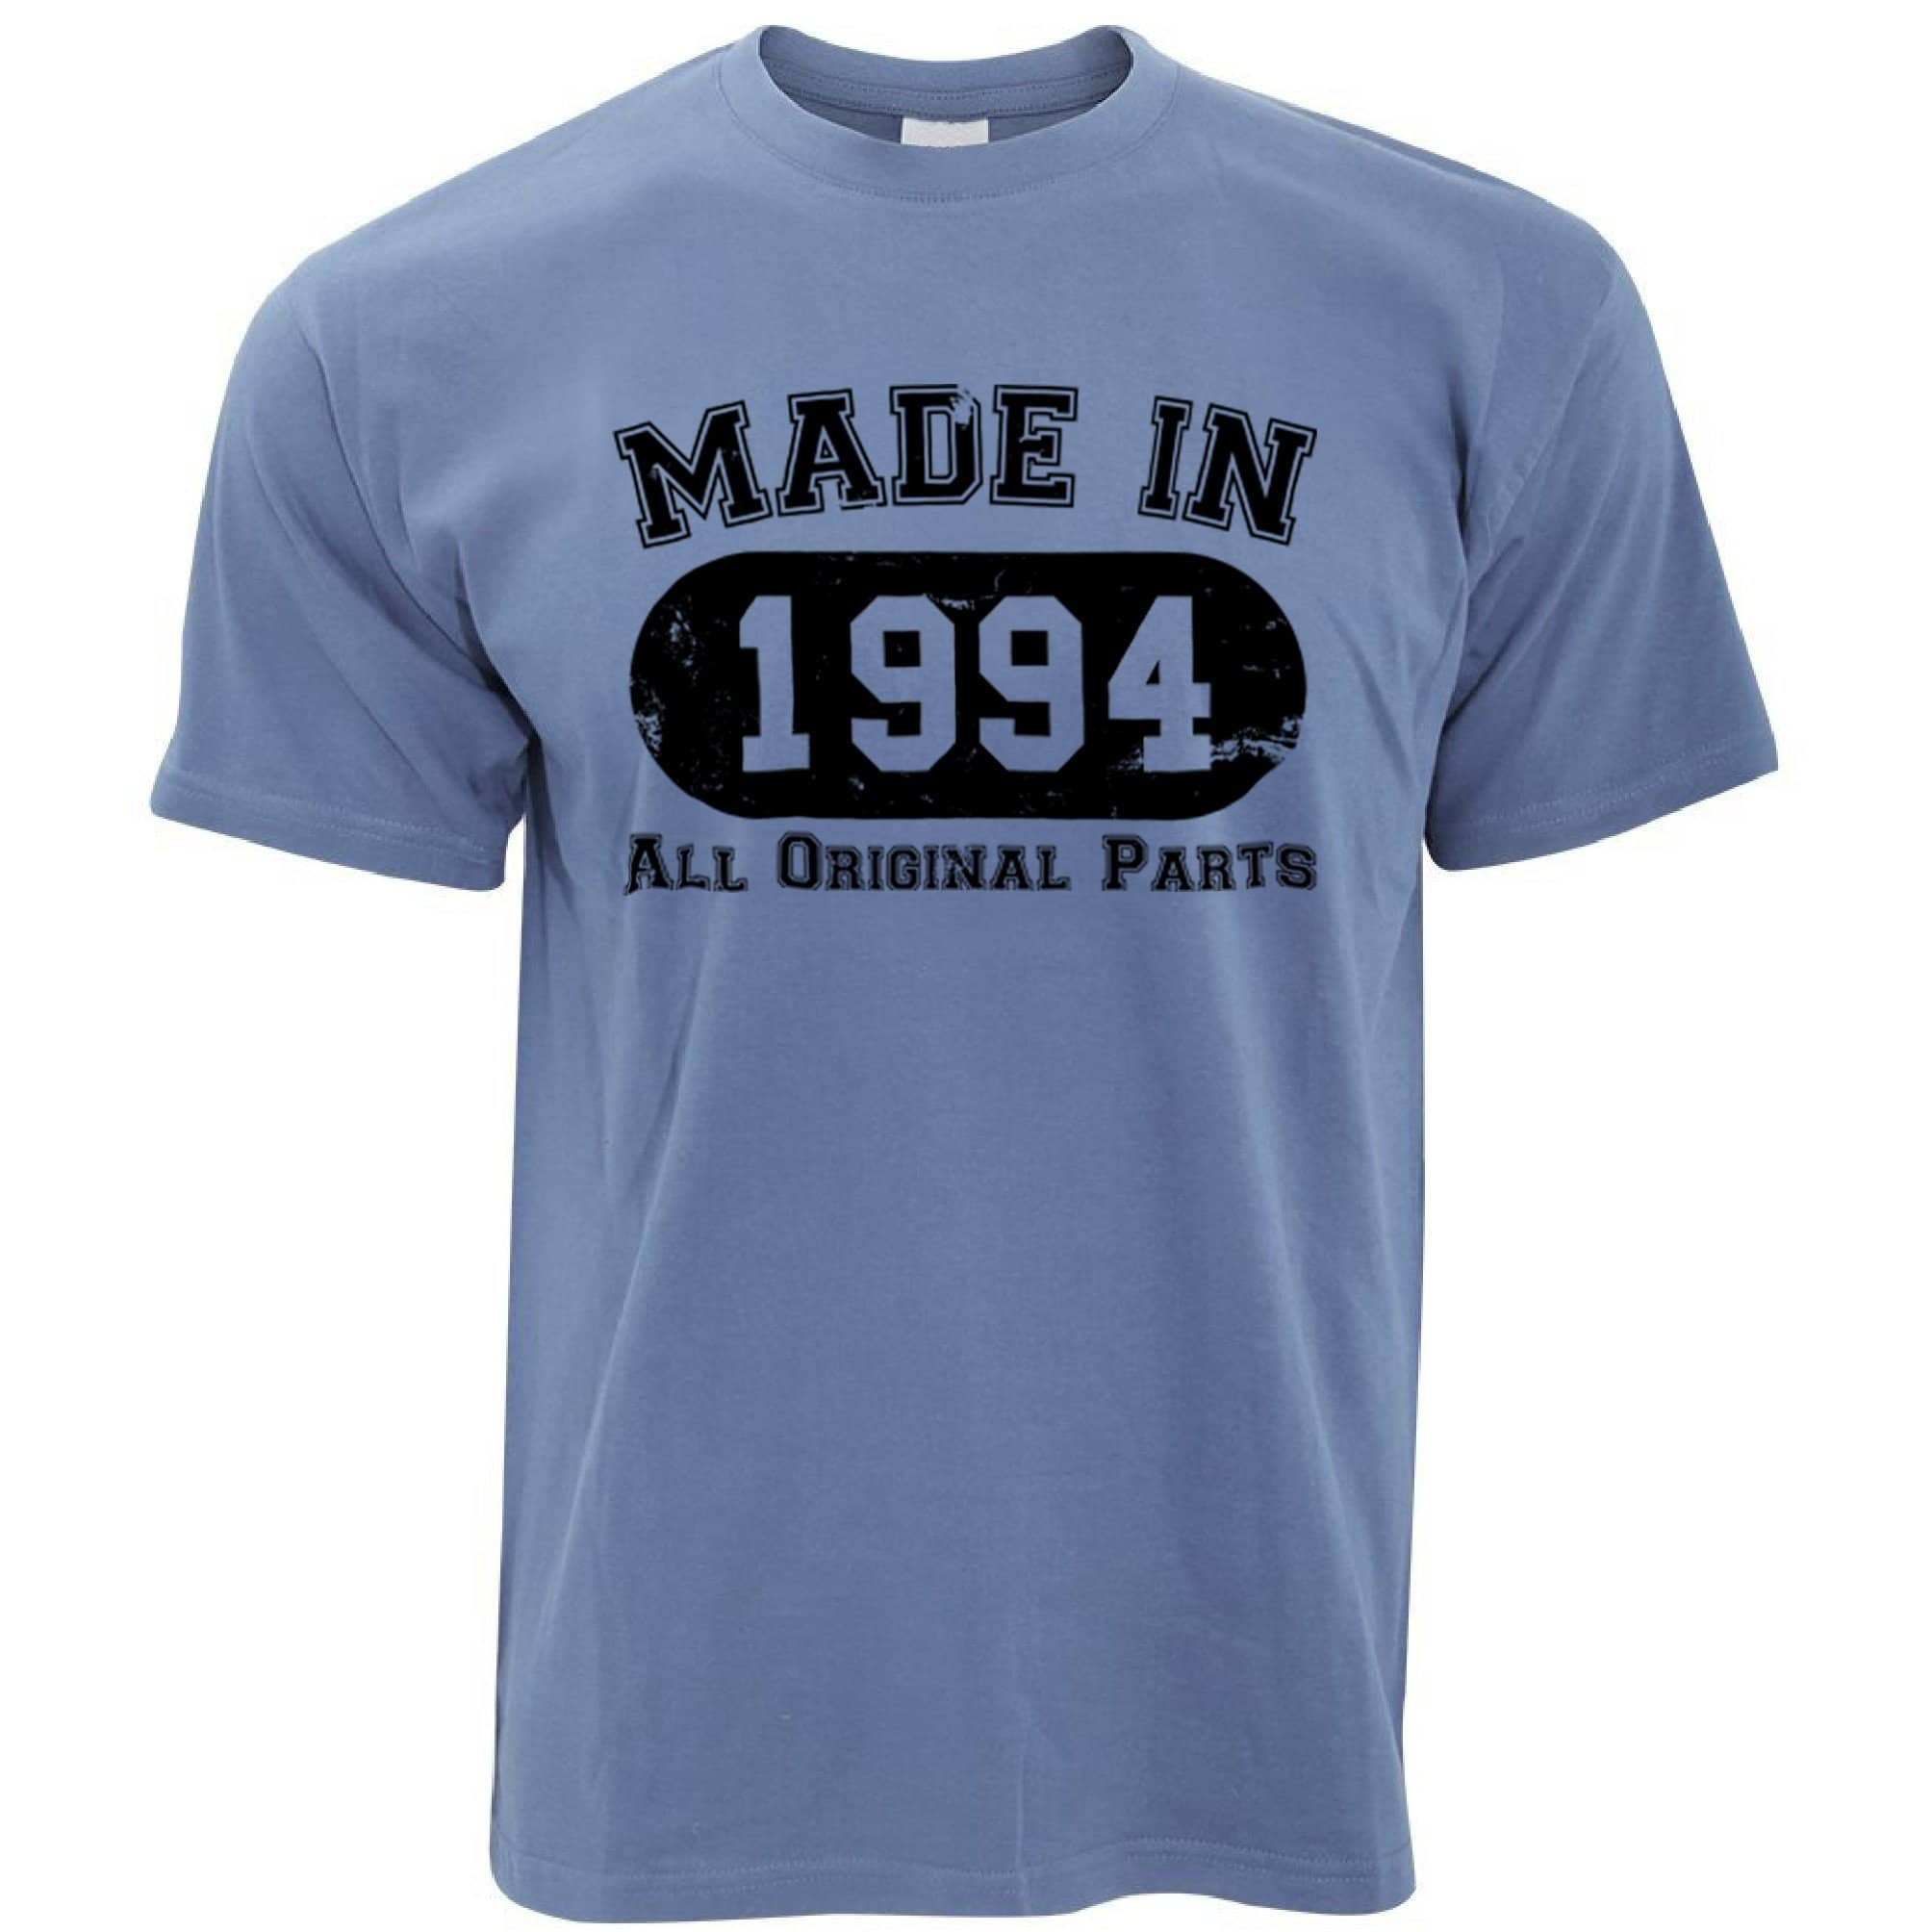 Made in 1994 All Original Parts Mens T-Shirt [Distressed]